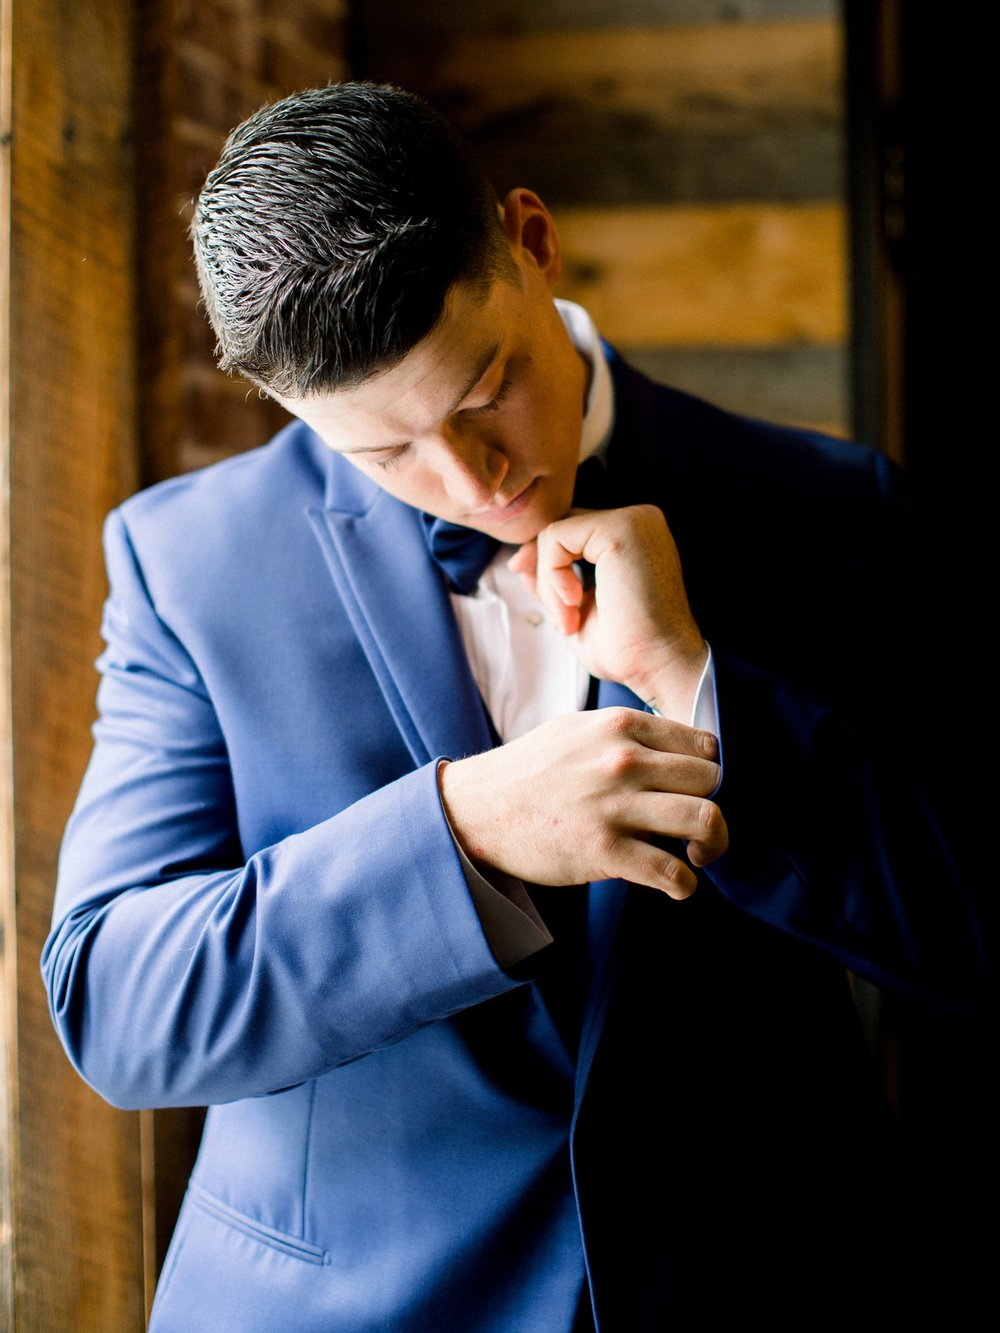 The Ravington Wedding Arkansas Photographer_0013.jpg